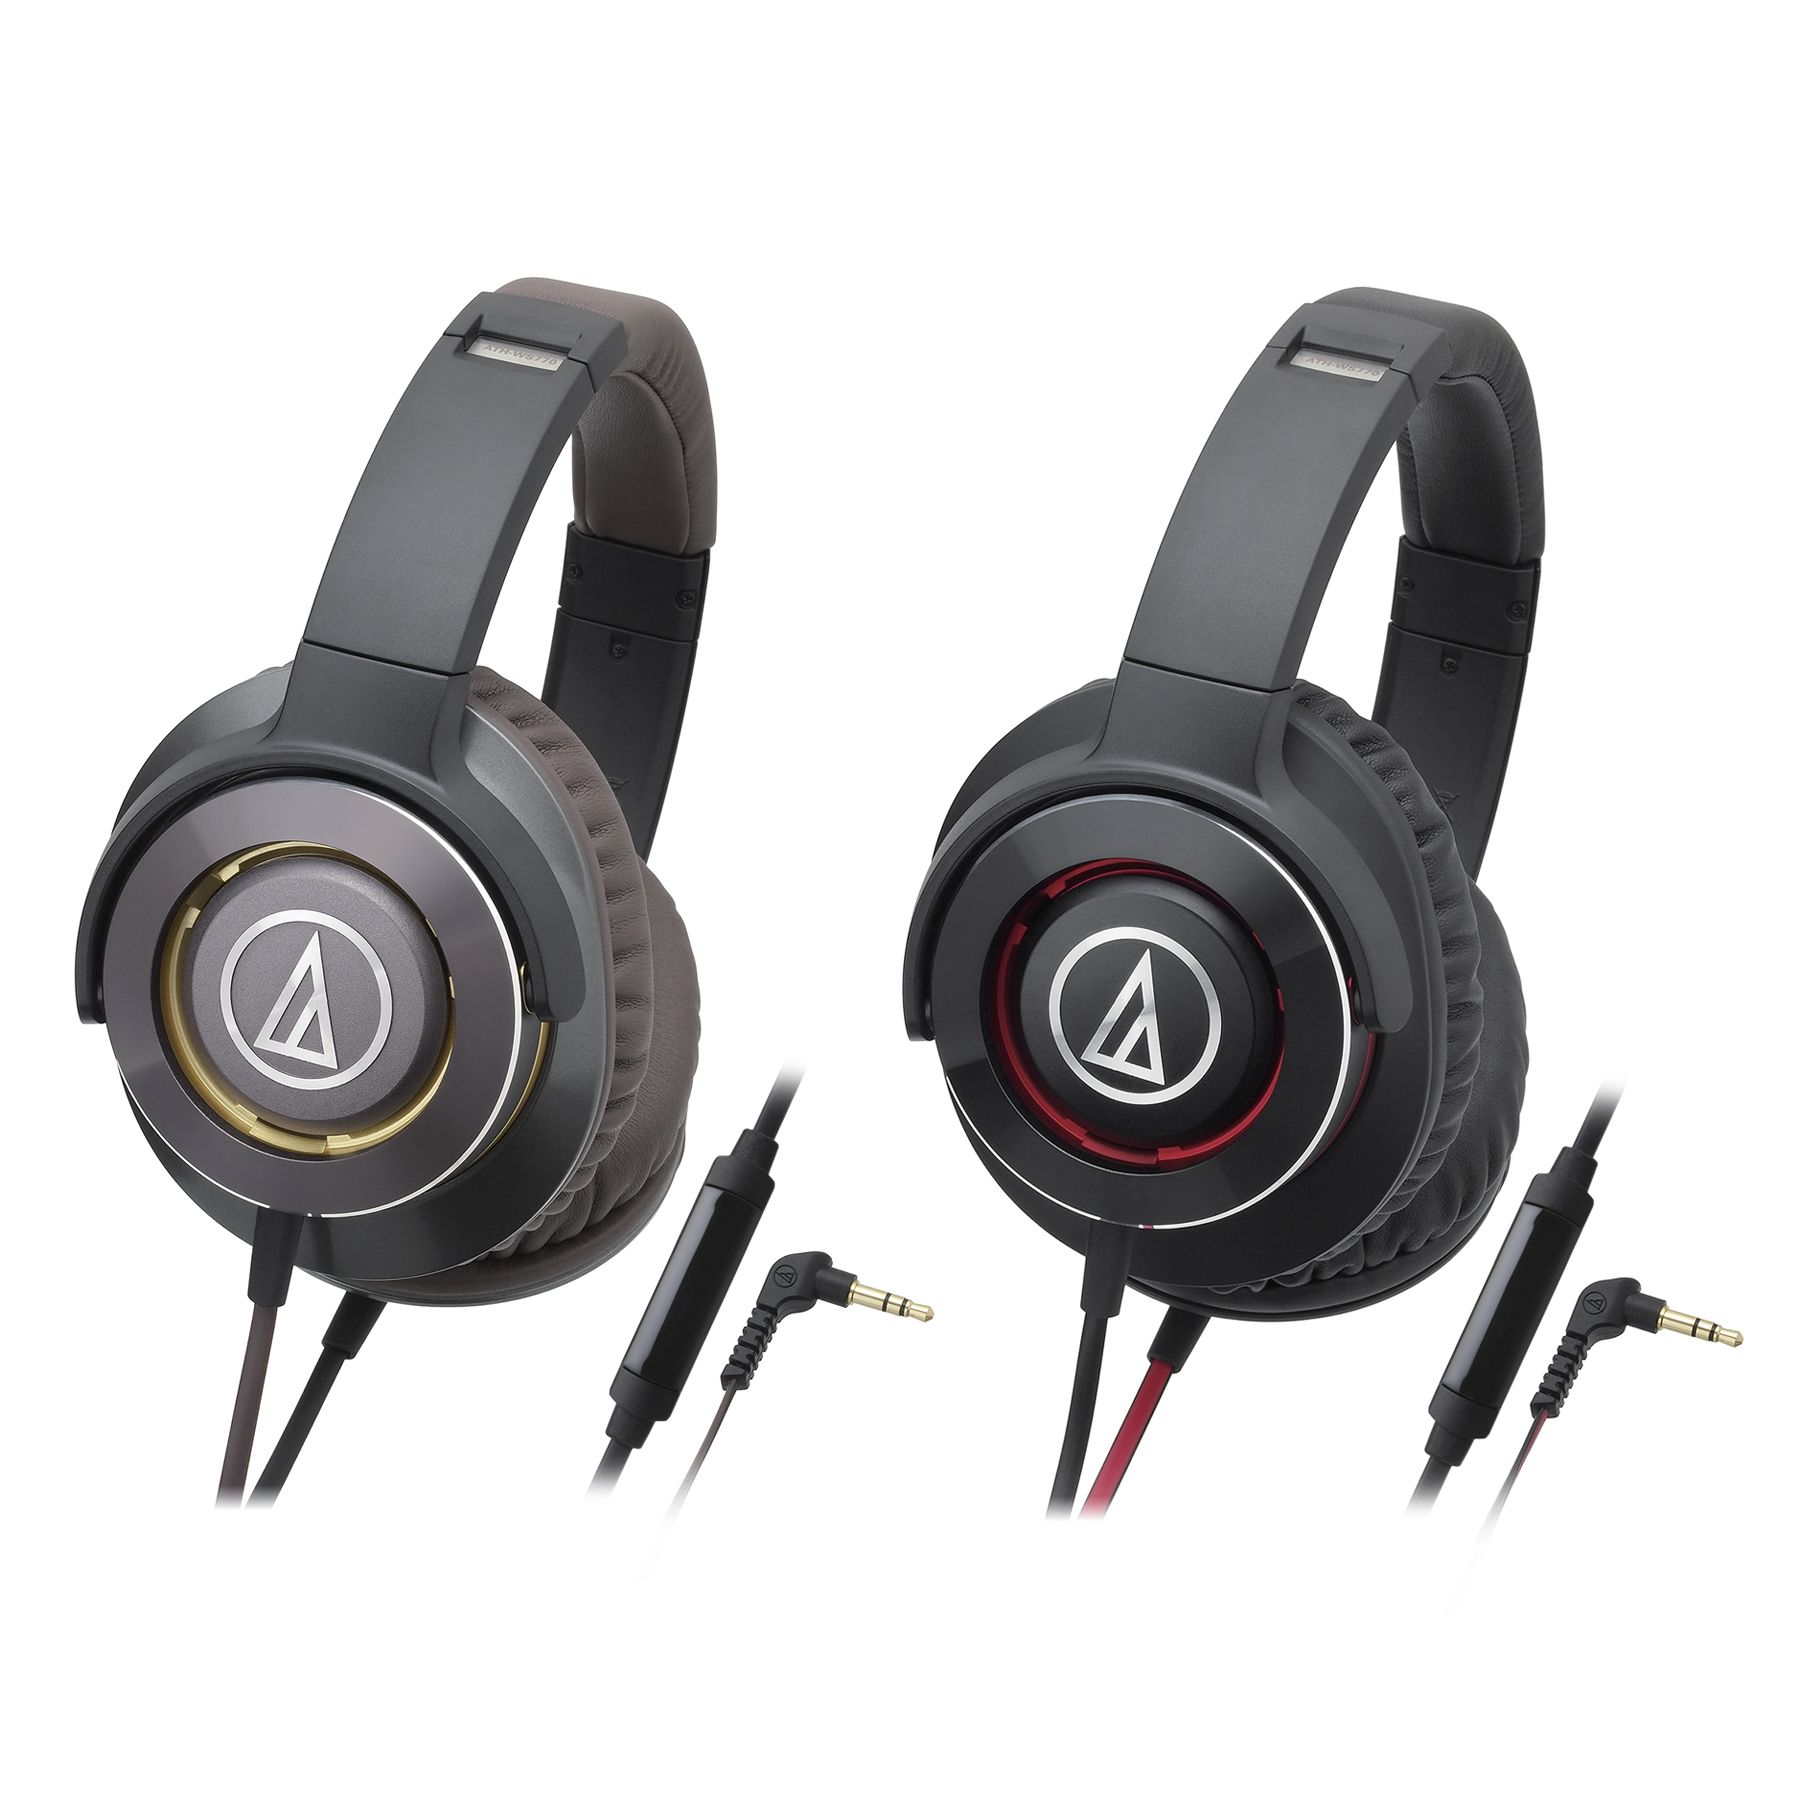 Audio Technica Solid Bass Professional Headphone Ath Ws770is Hitam Ws990bt Red Hi Res Bluetooth Genuine New Over Ear Headphones With Mic